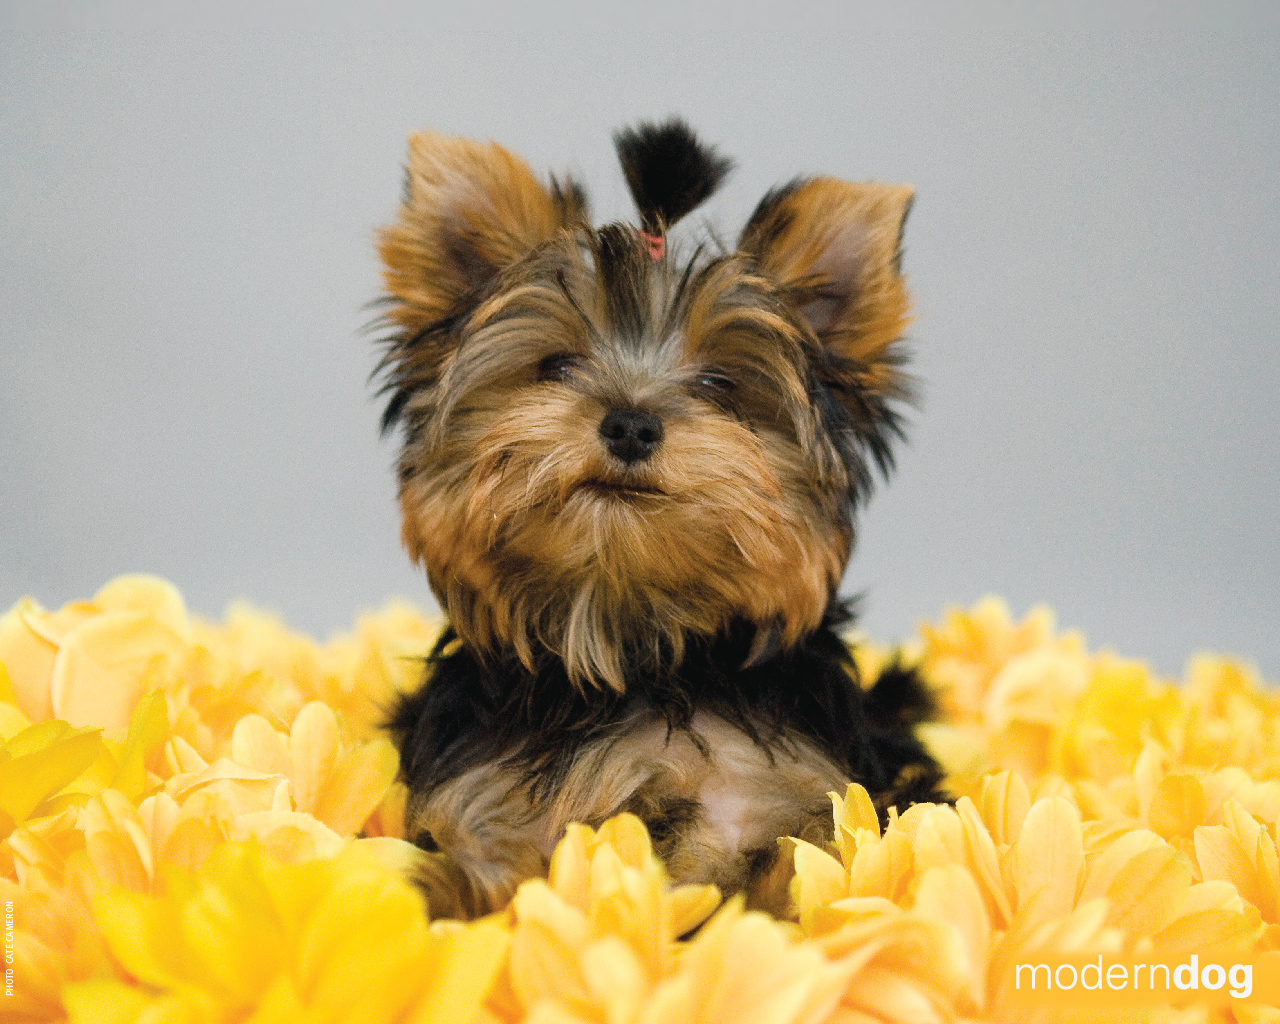 Cute Itouch Wallpapers Puppies Free Modern Dog Wallpaper Modern Dog Magazine